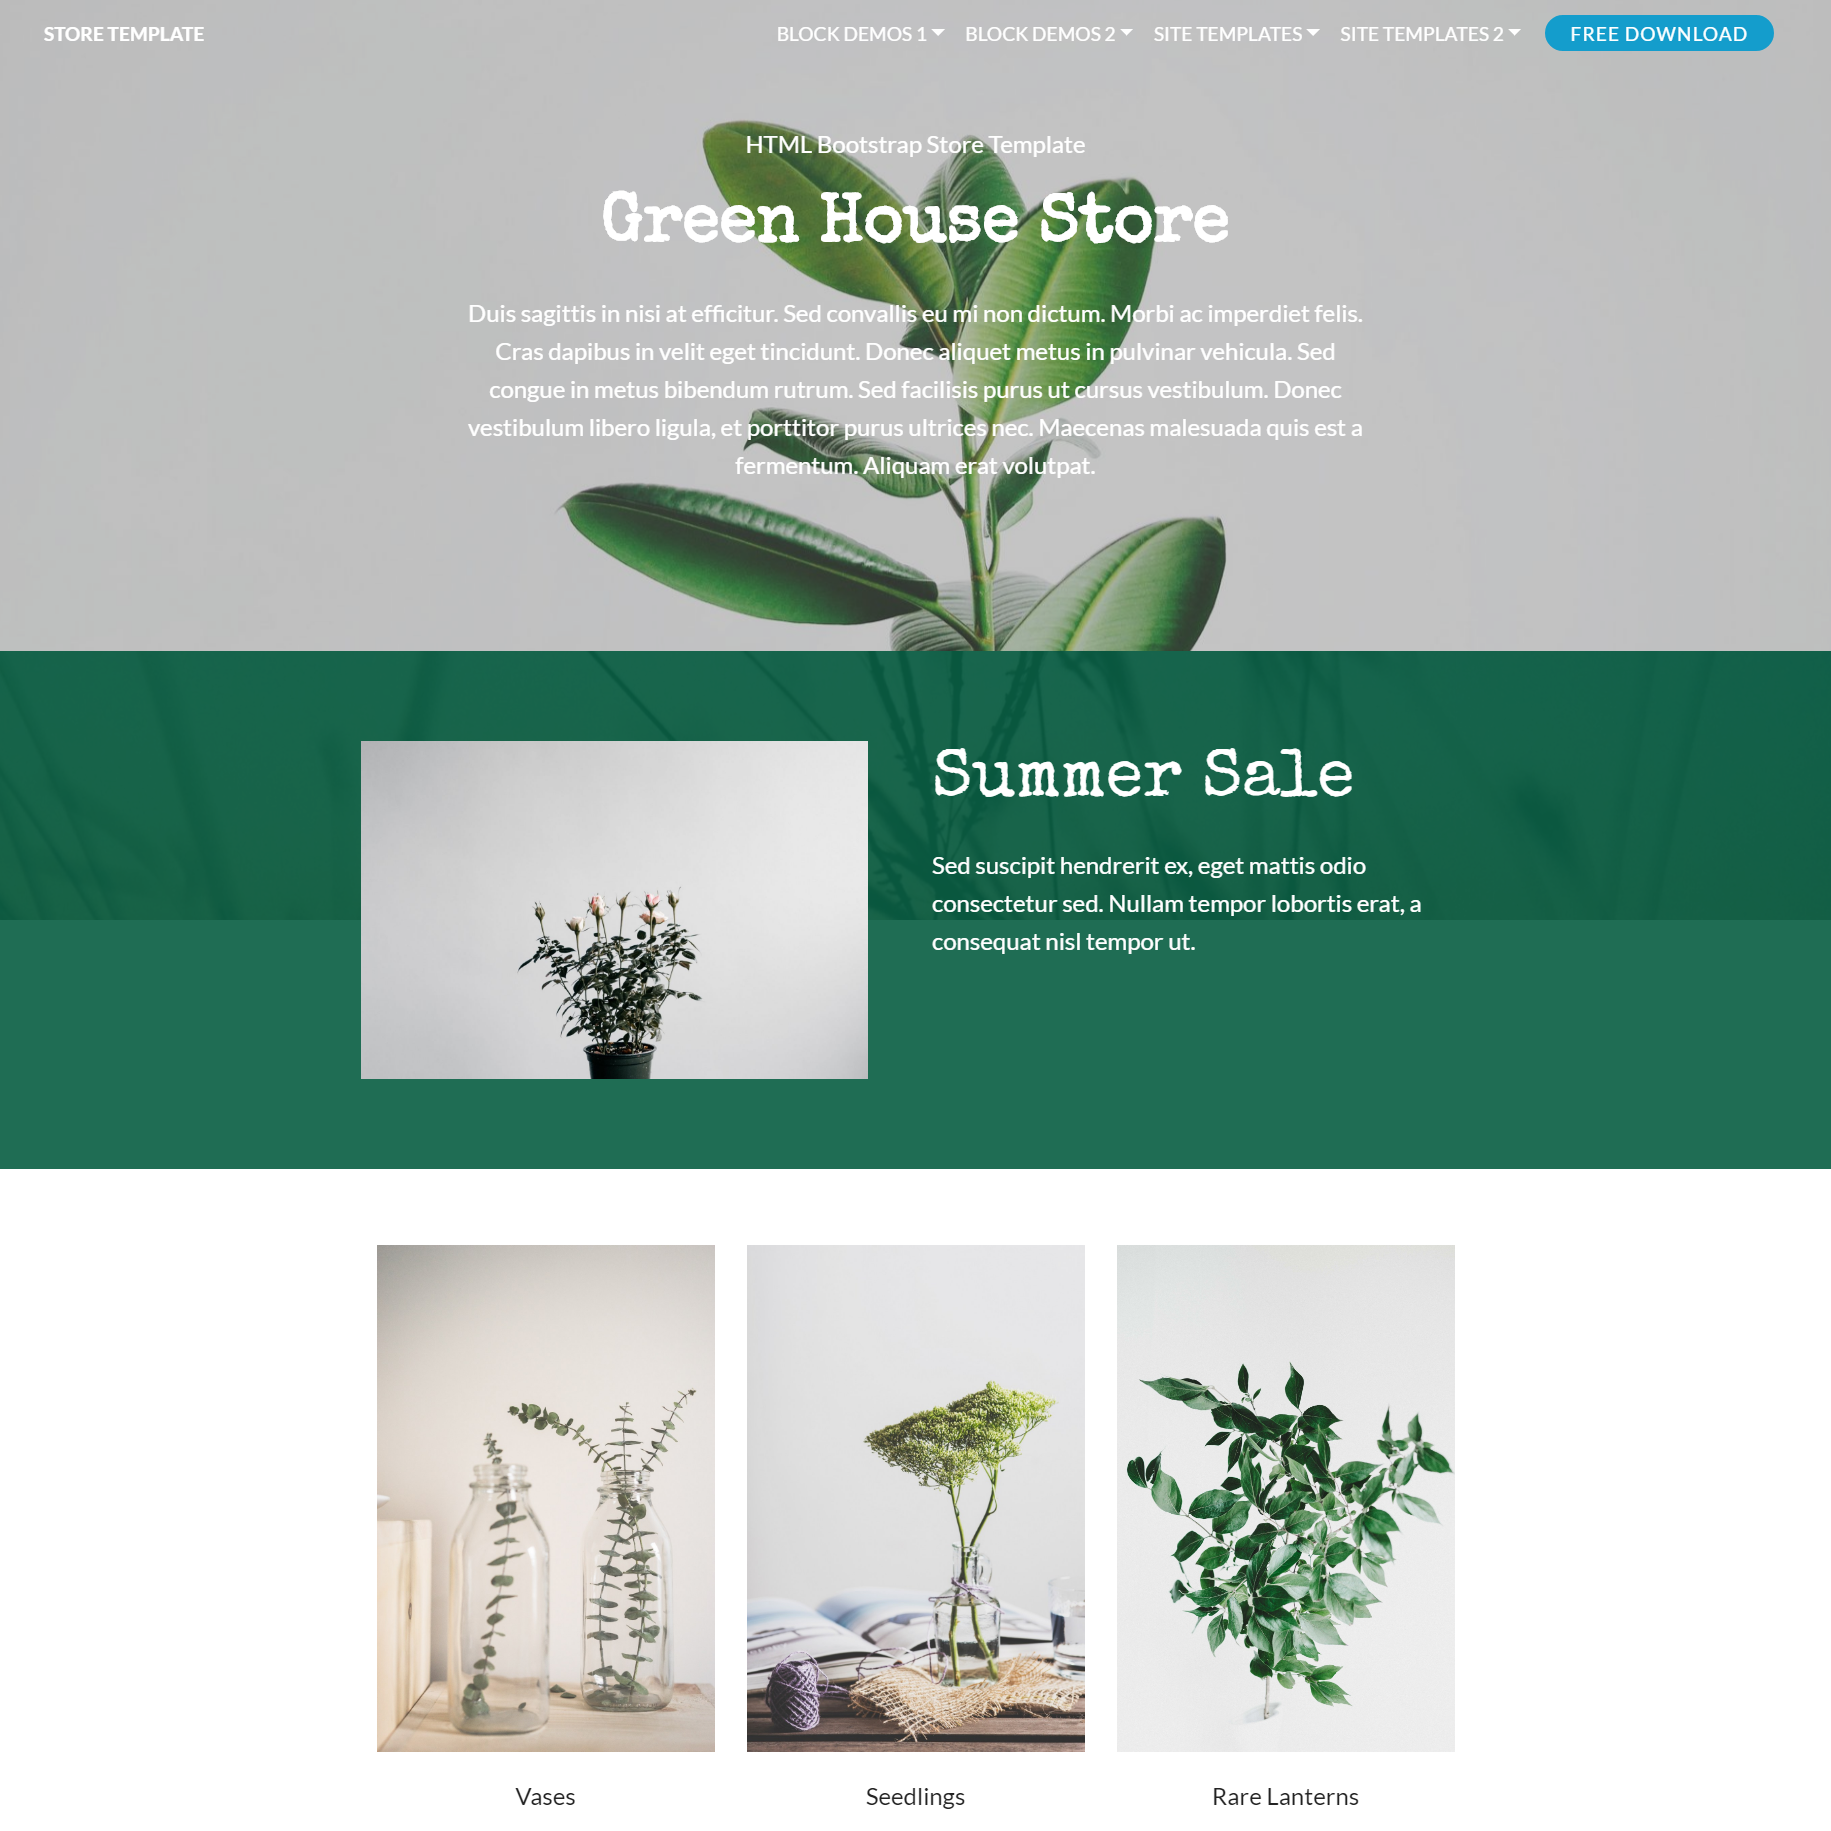 Responsive Bootstrap Store Templates